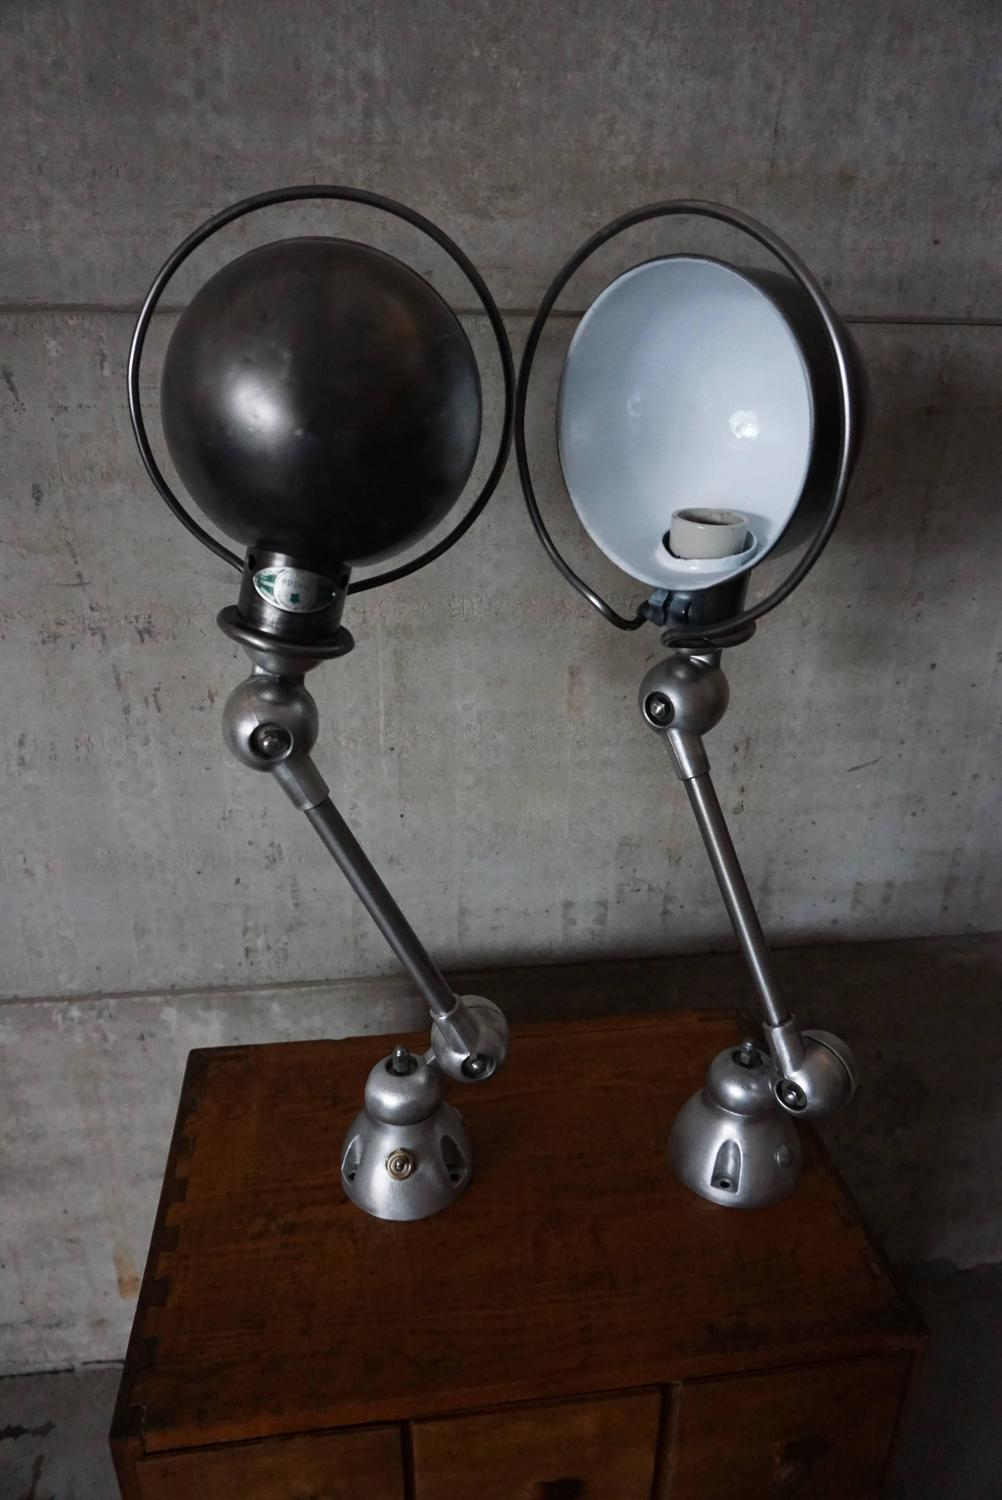 French Industrial Wall Lights : Pair of French Industrial Wall Lights / Scones by Jean-Louis Domecq for Jielde at 1stdibs